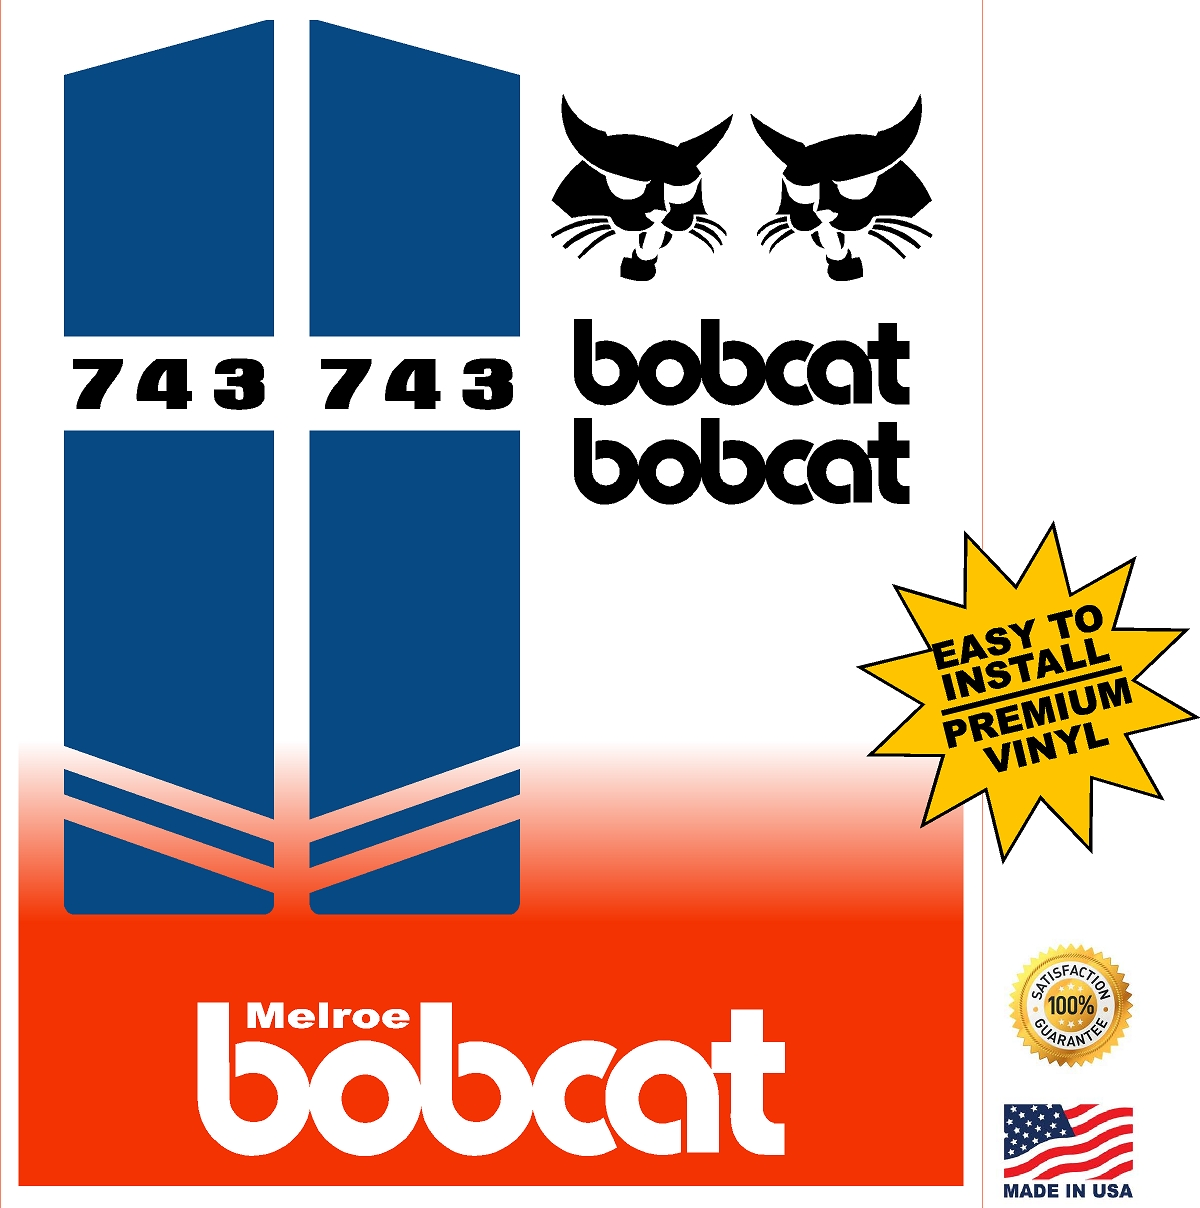 Bobcat 743 replacement decal kit